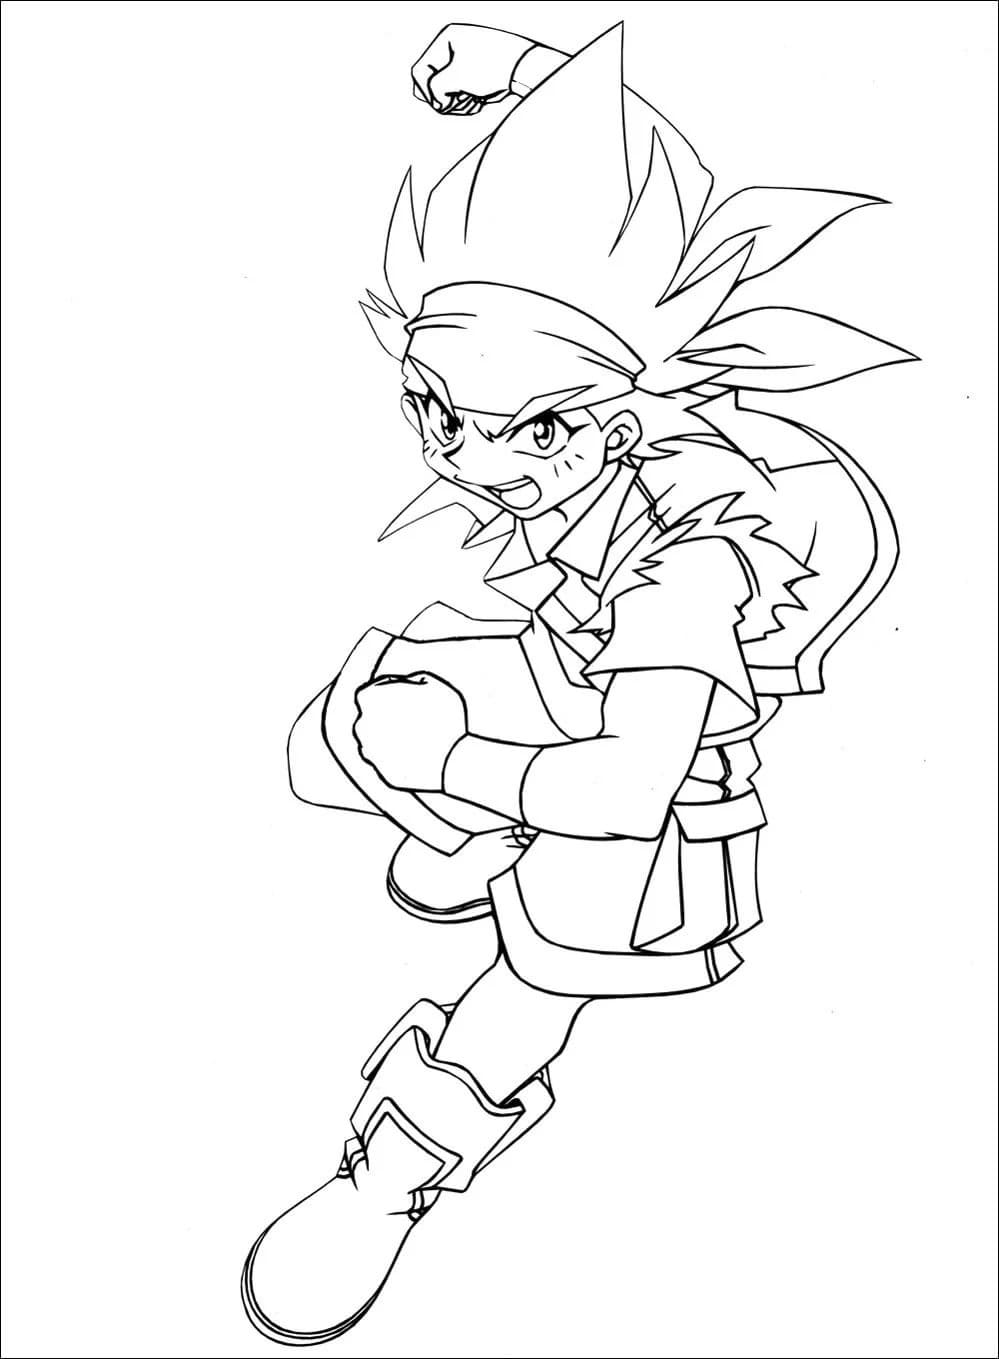 beyblade characters coloring pages beyblade coloring pages 57 images free printable coloring characters pages beyblade